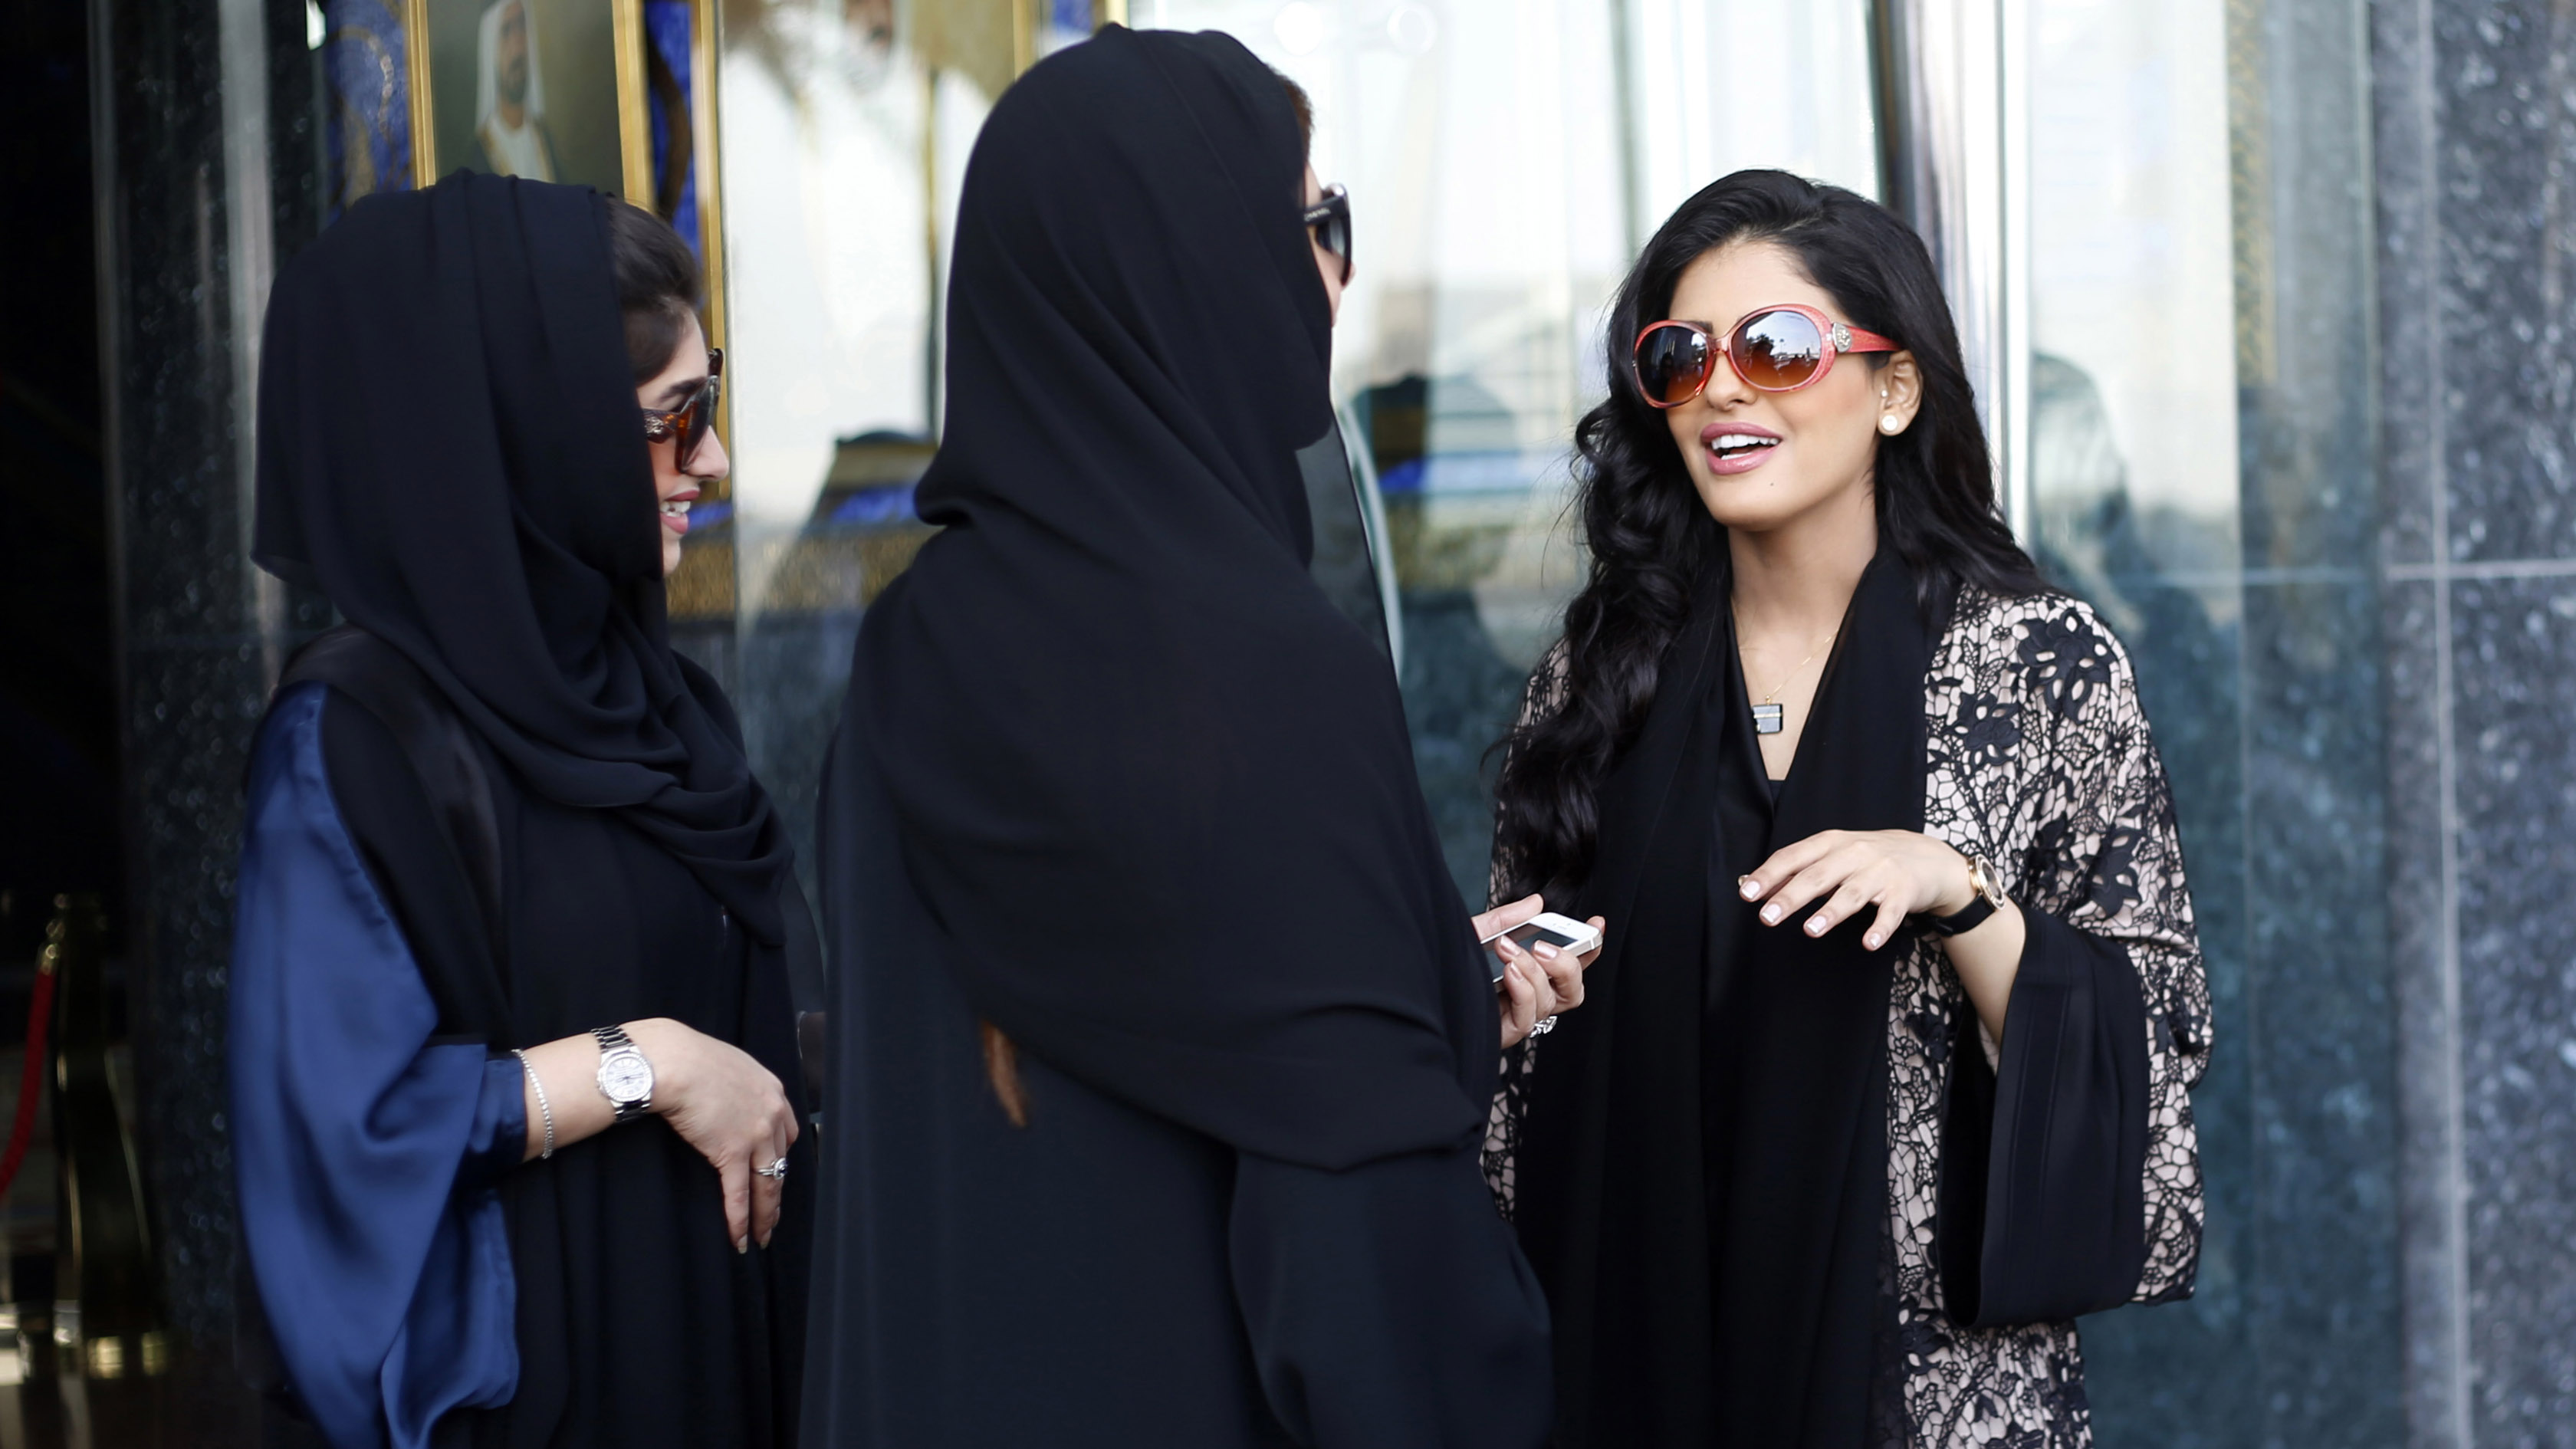 Princess Ameerah al-Taweel (R), chief executive of Saudi-based Time Entertainment Holding, speaks with women at Burj Al Arab hotel in Dubai March 9, 2014. While female company directors are still a rarity in the Middle East, the region's growing wealth, r